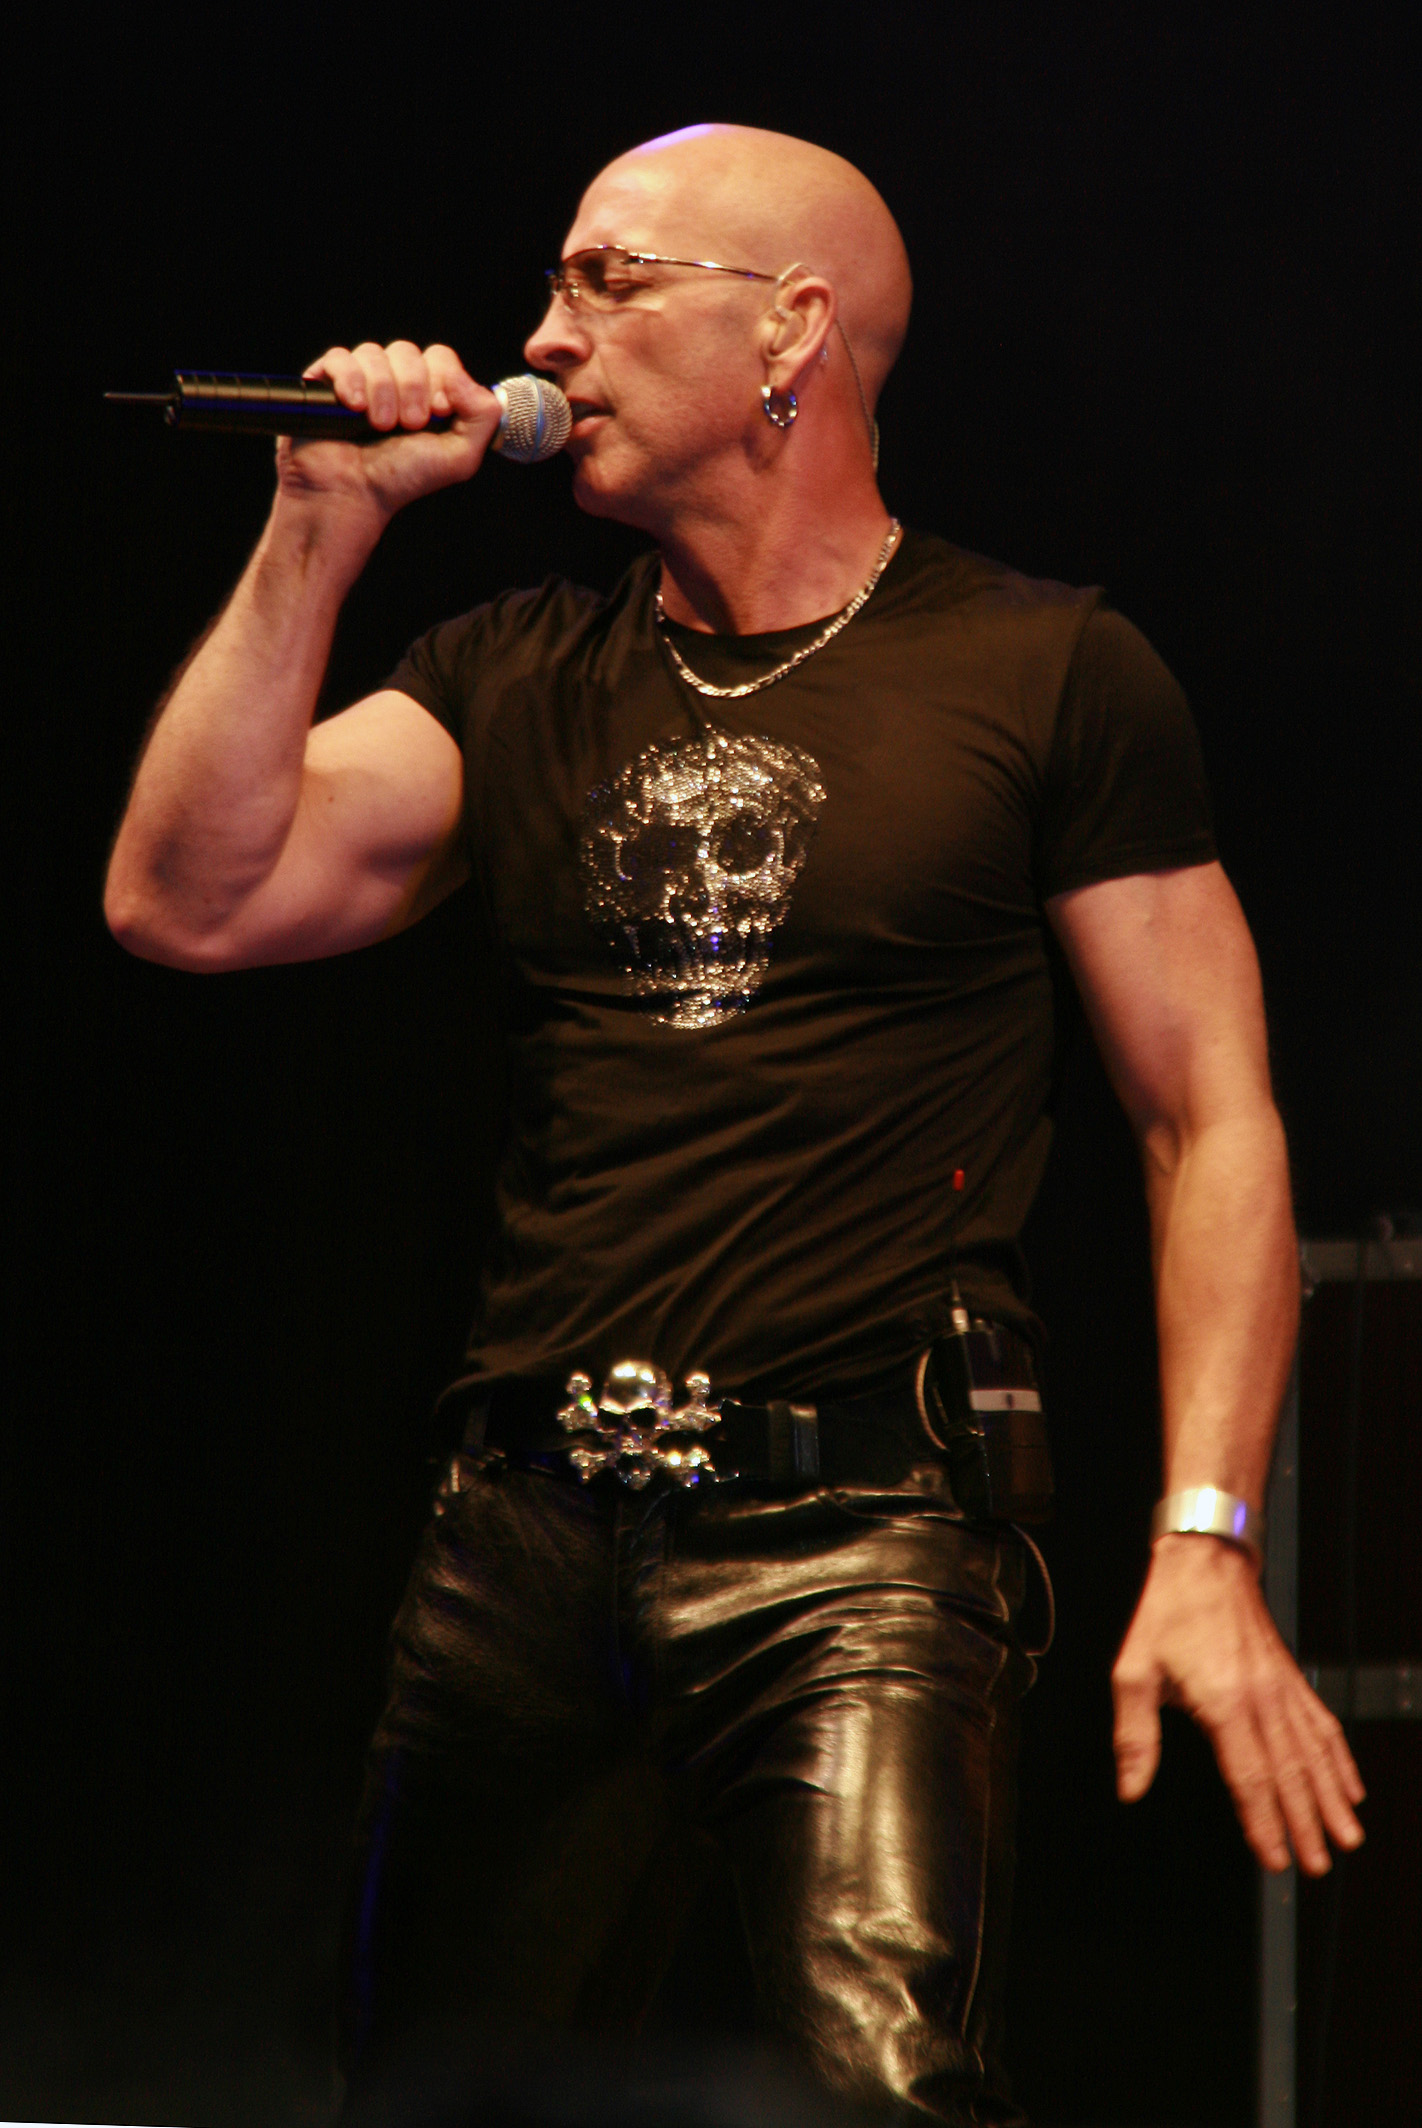 fred singles over 50 I'm too sexy is the debut song by british group right said fred the single peaked at number two on the uk singles chartoutside the united kingdom, i'm too sexy topped the charts in six countries, including australia, ireland, and the united states.